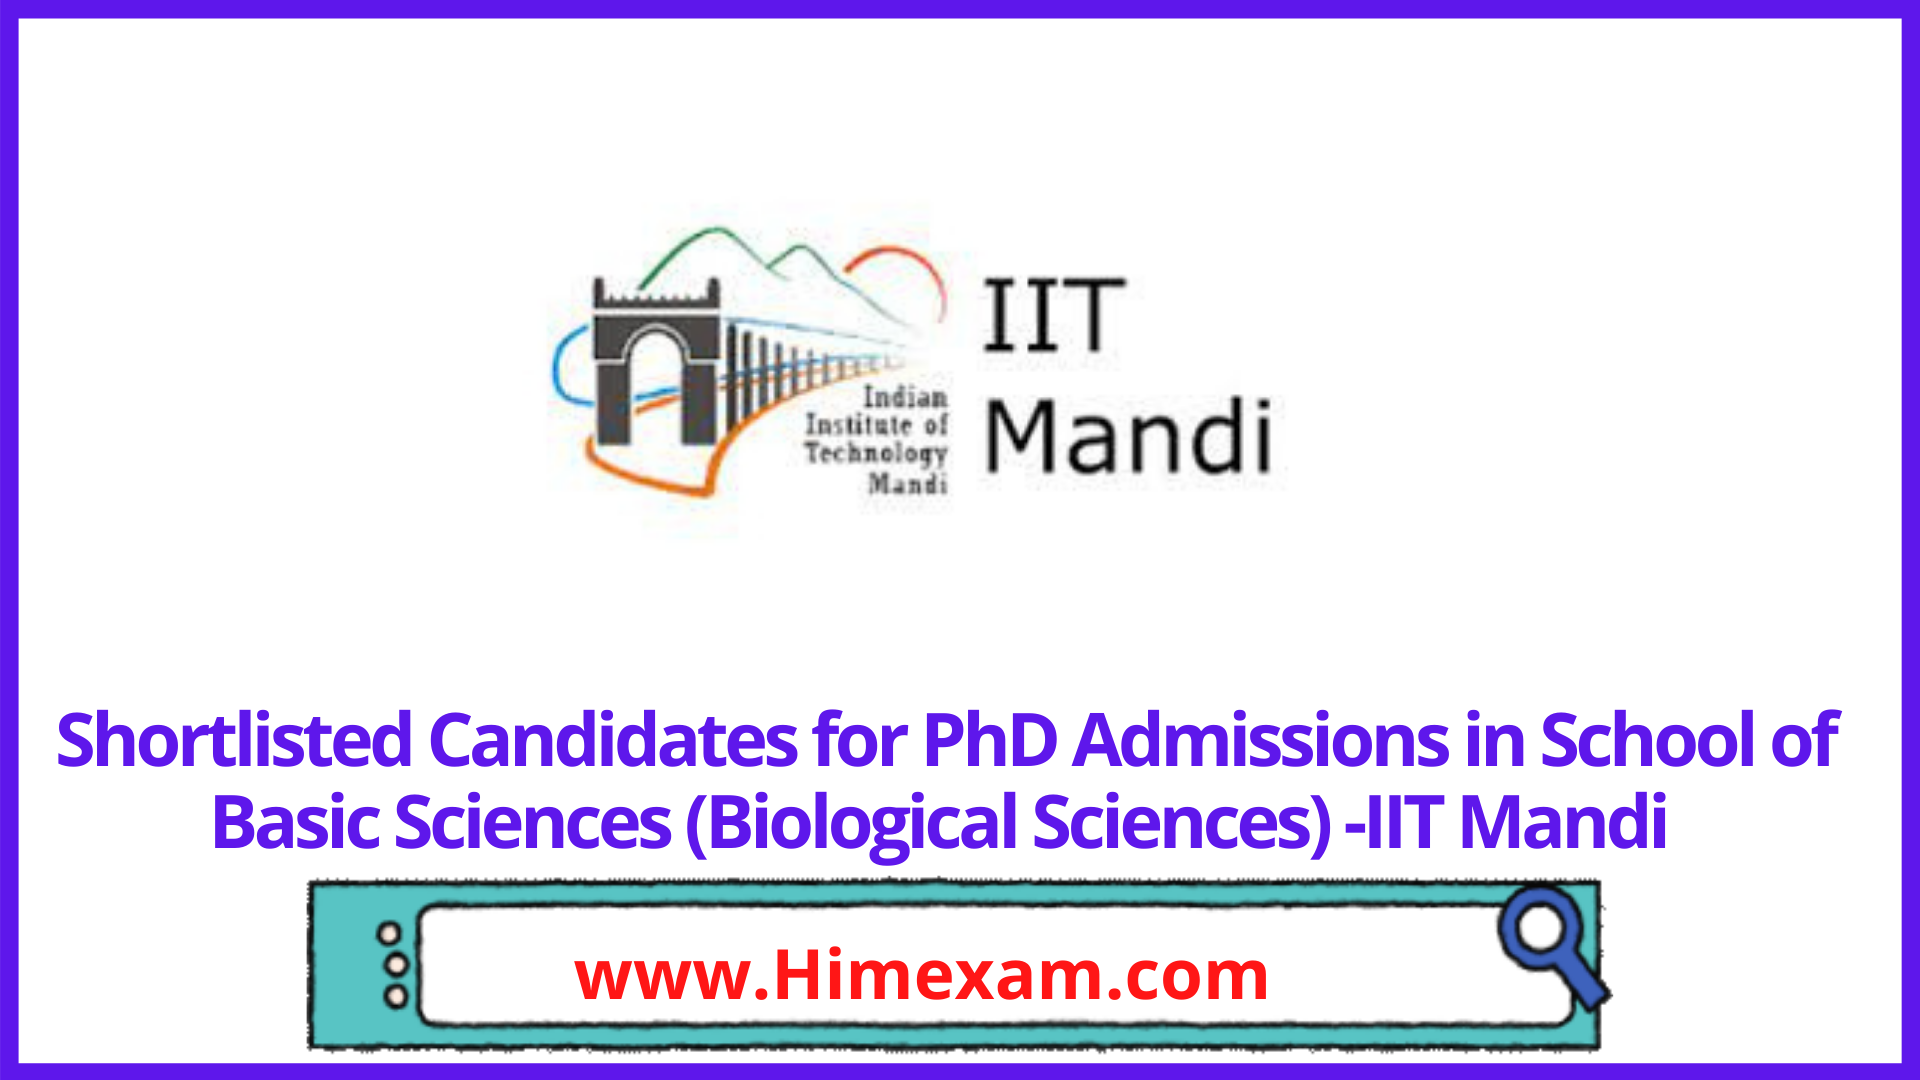 Shortlisted Candidates for PhD Admissions in School of Basic Sciences (Biological Sciences) -IIT Mandi